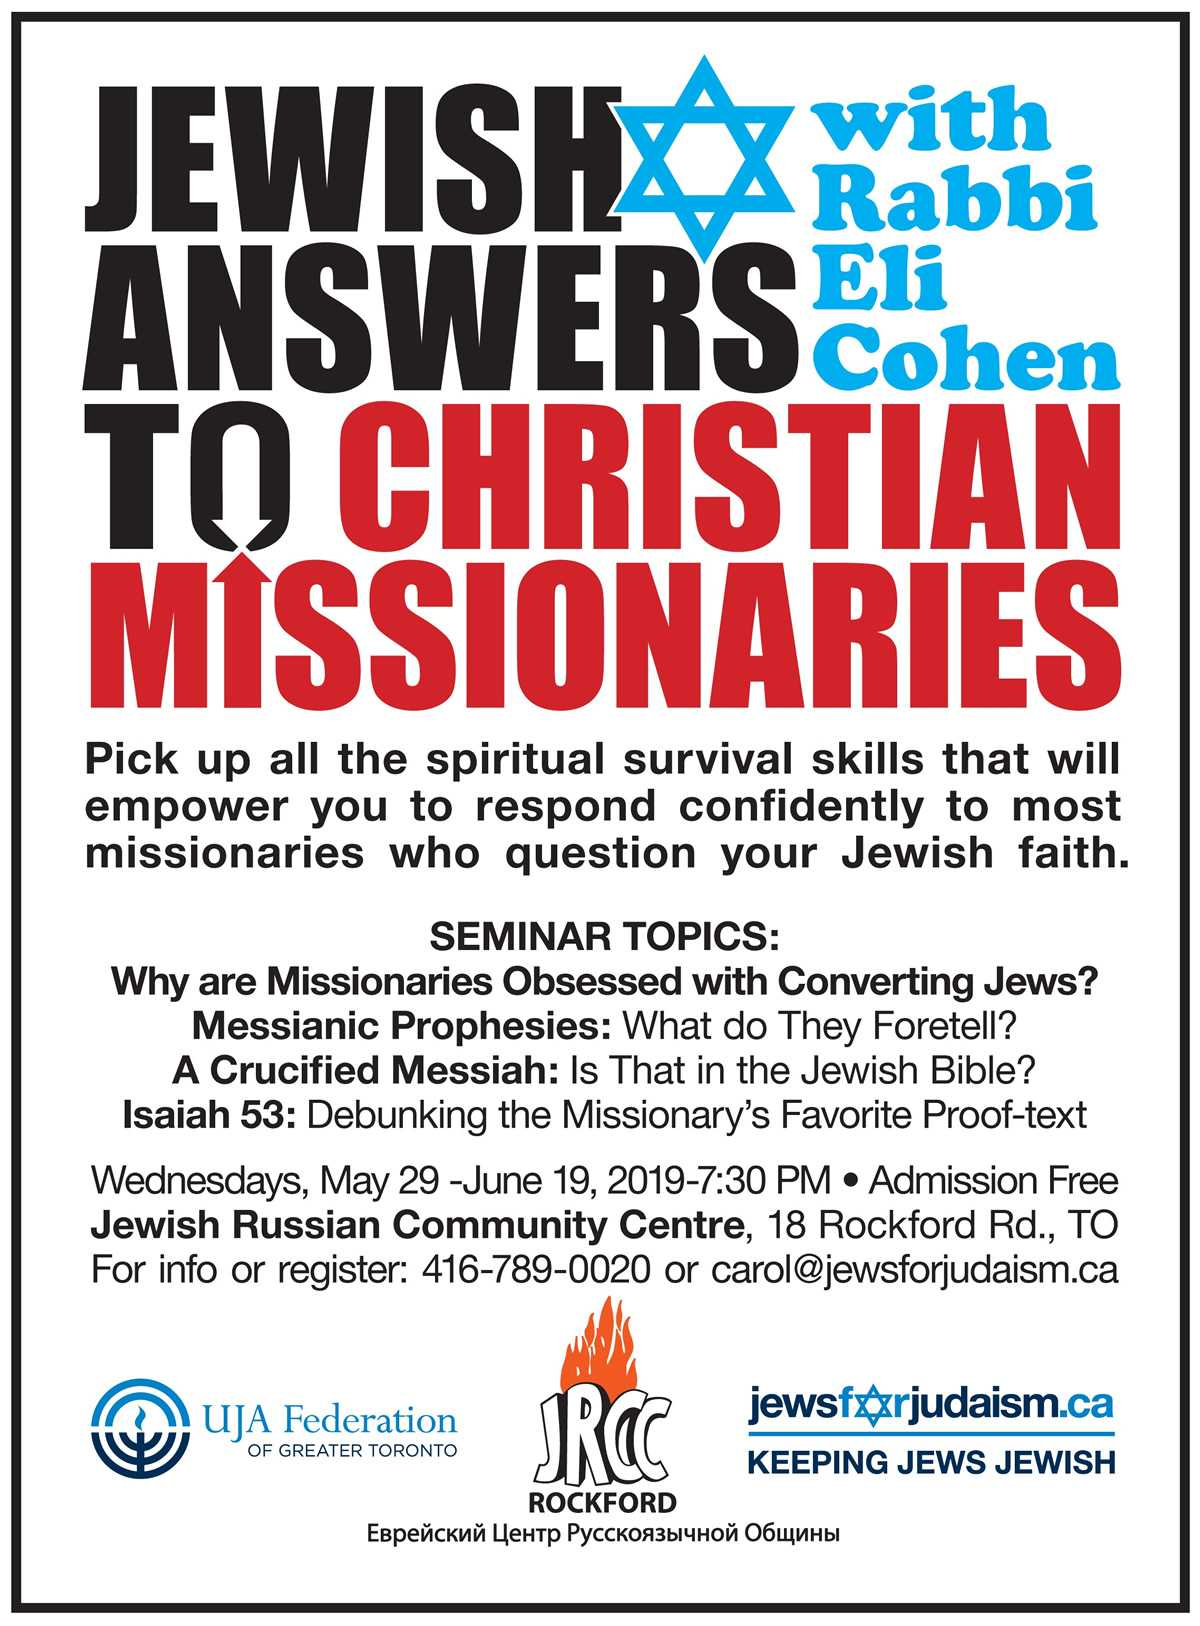 The Jew and the Christian Missionary: A Jewish Response to Missionary Christianity